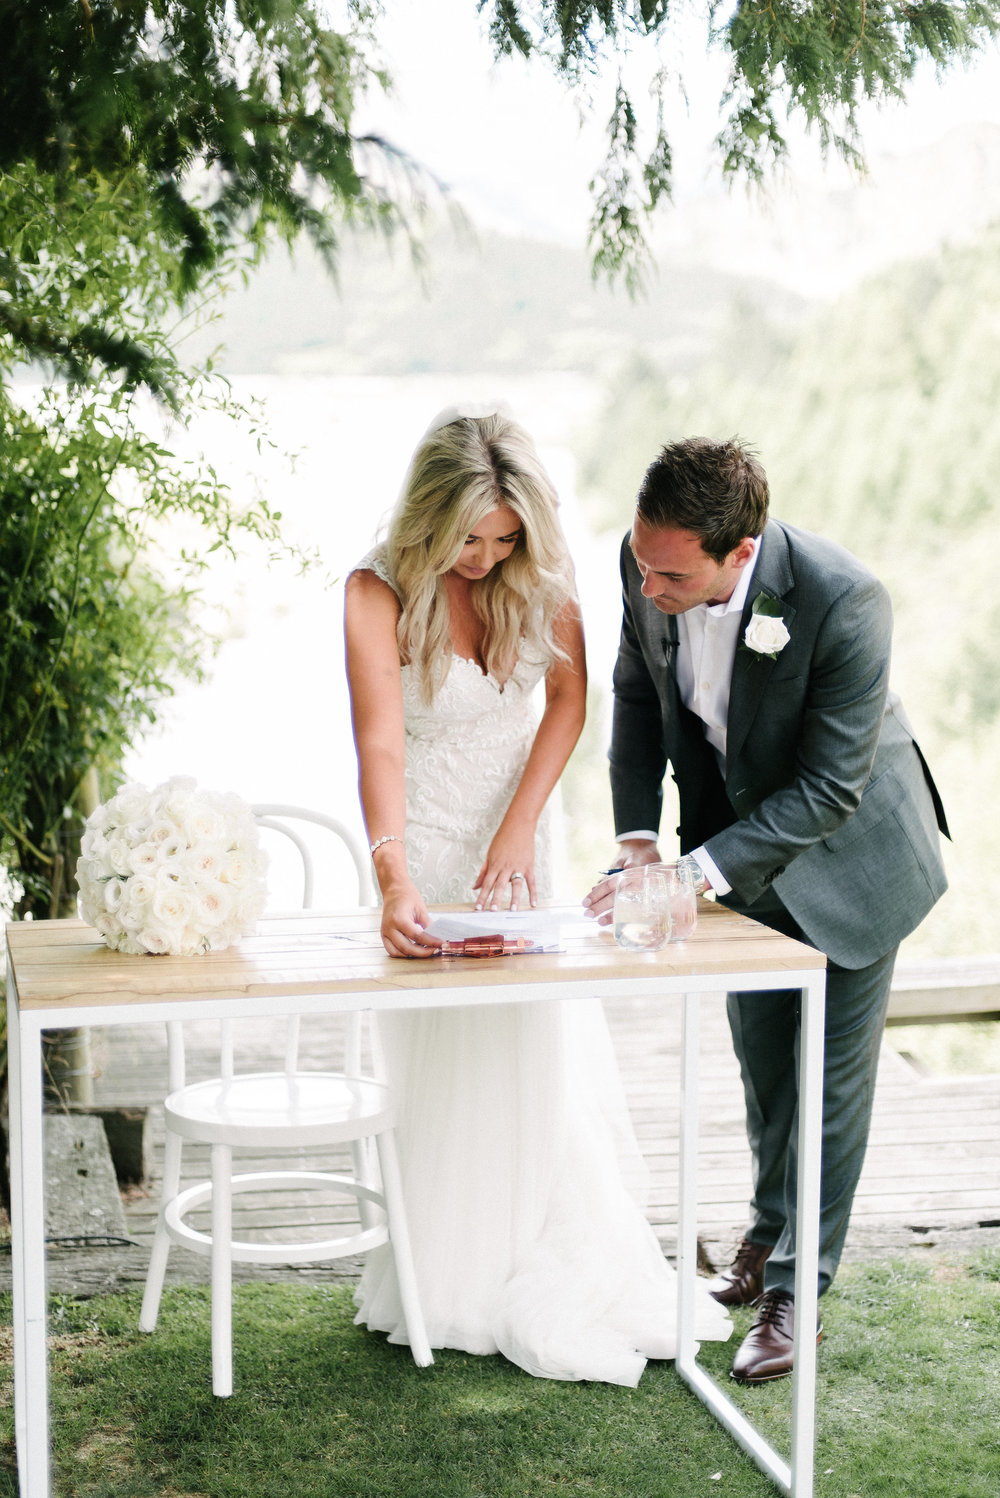 Hire the stylist ps i love you hire the florist flower room queenstown hire the stationary harlan creative